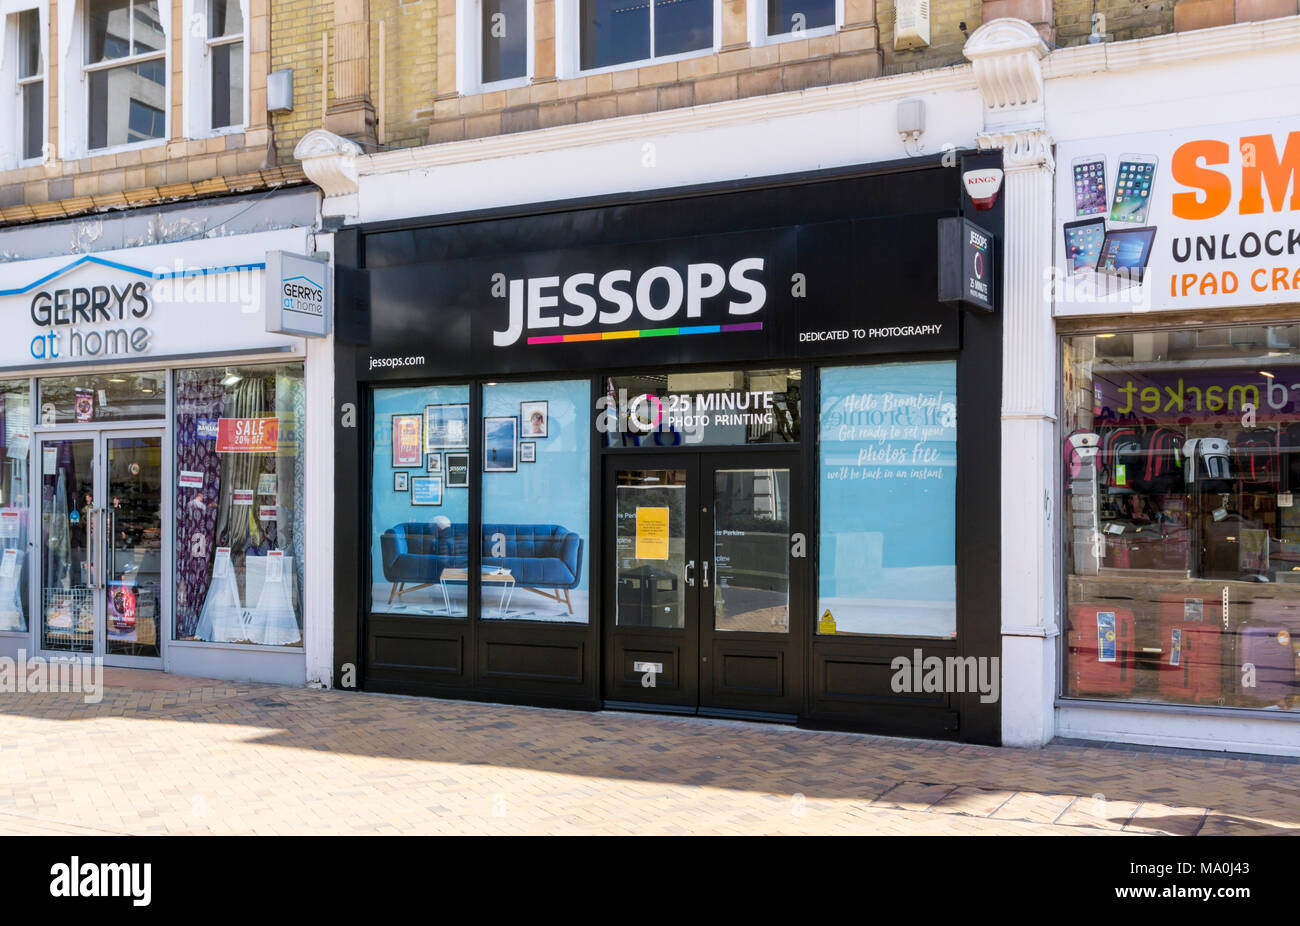 A branch of Jessops photography shops in Bromley High Street, South London. - Stock Image